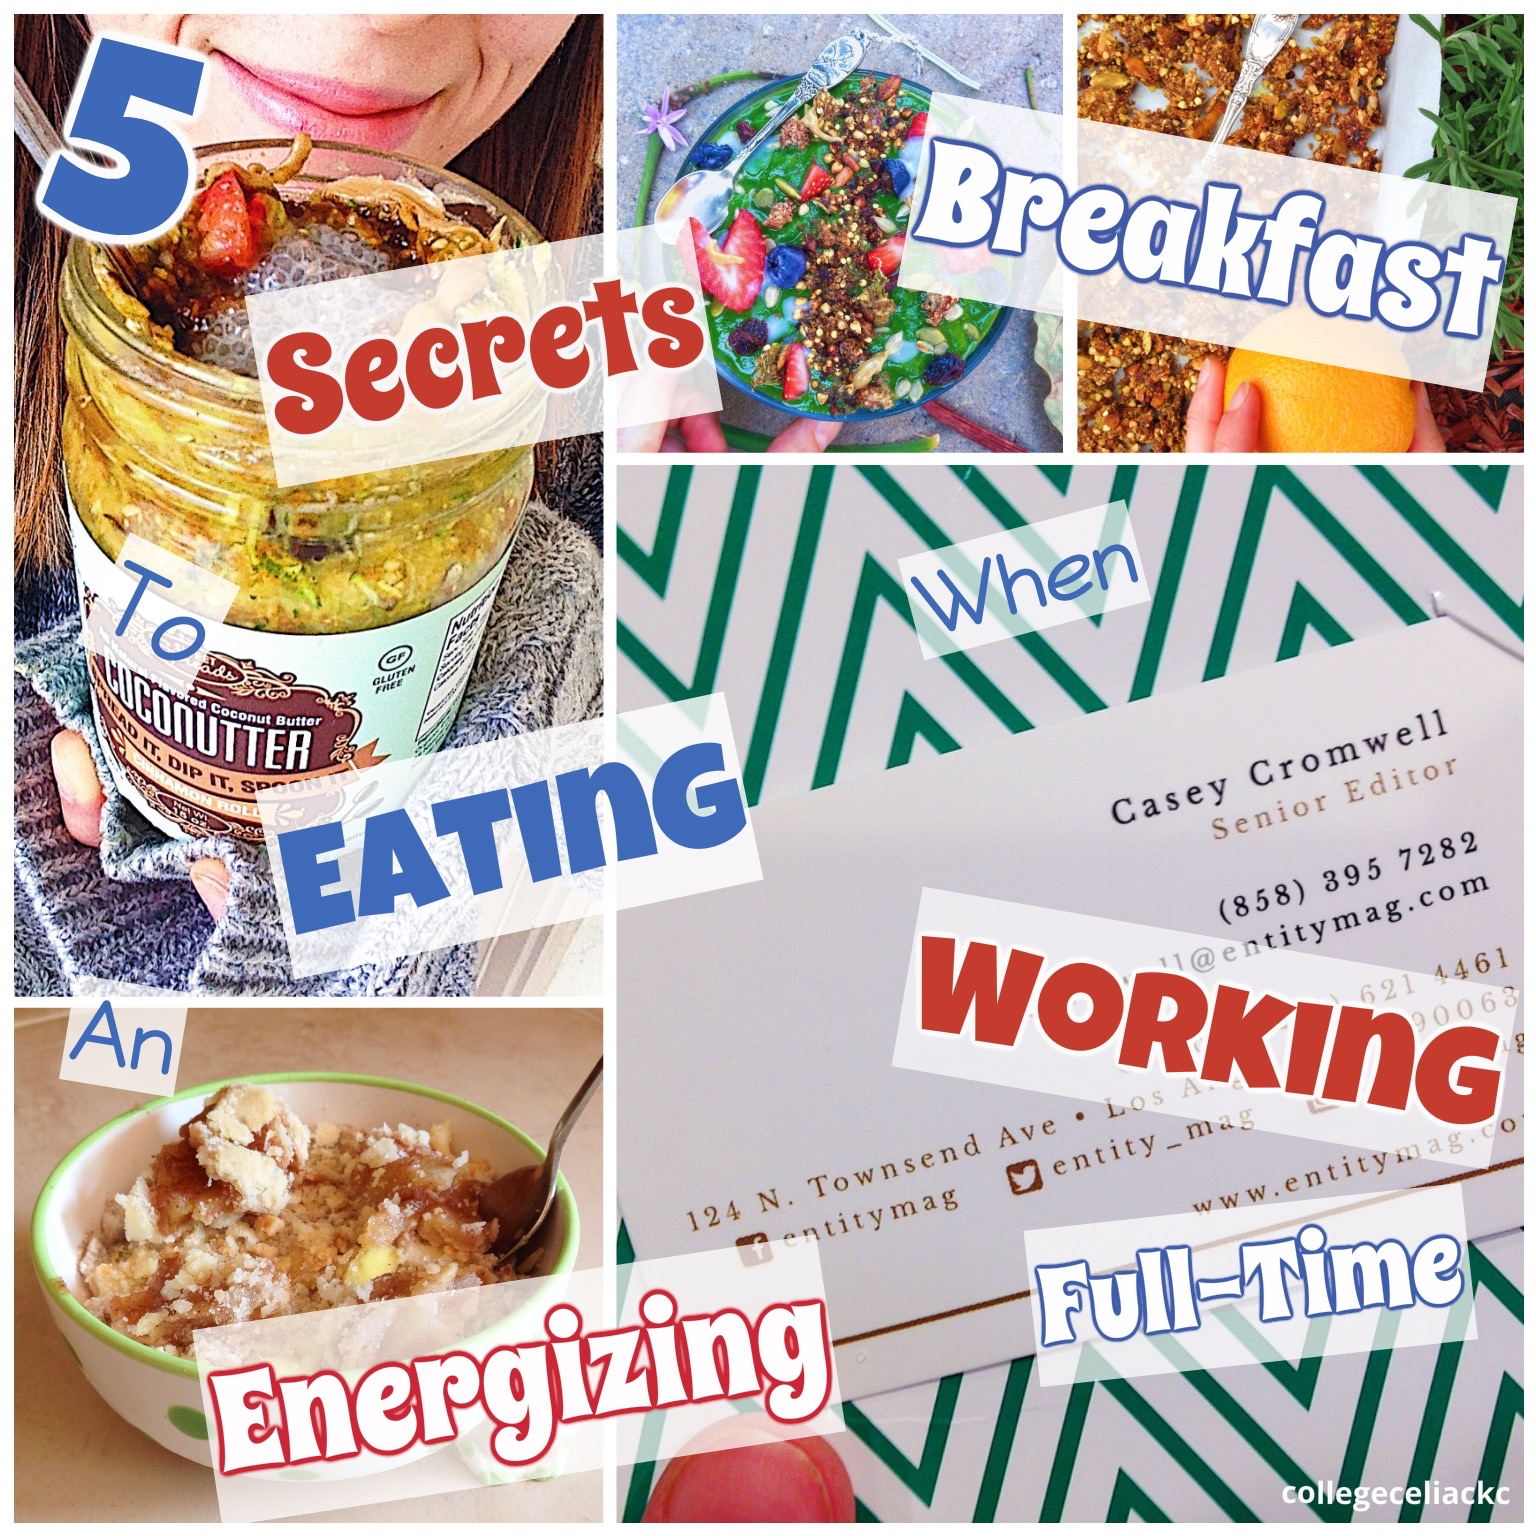 5 Secrets to Eating an Energizing Breakfast When You're ...